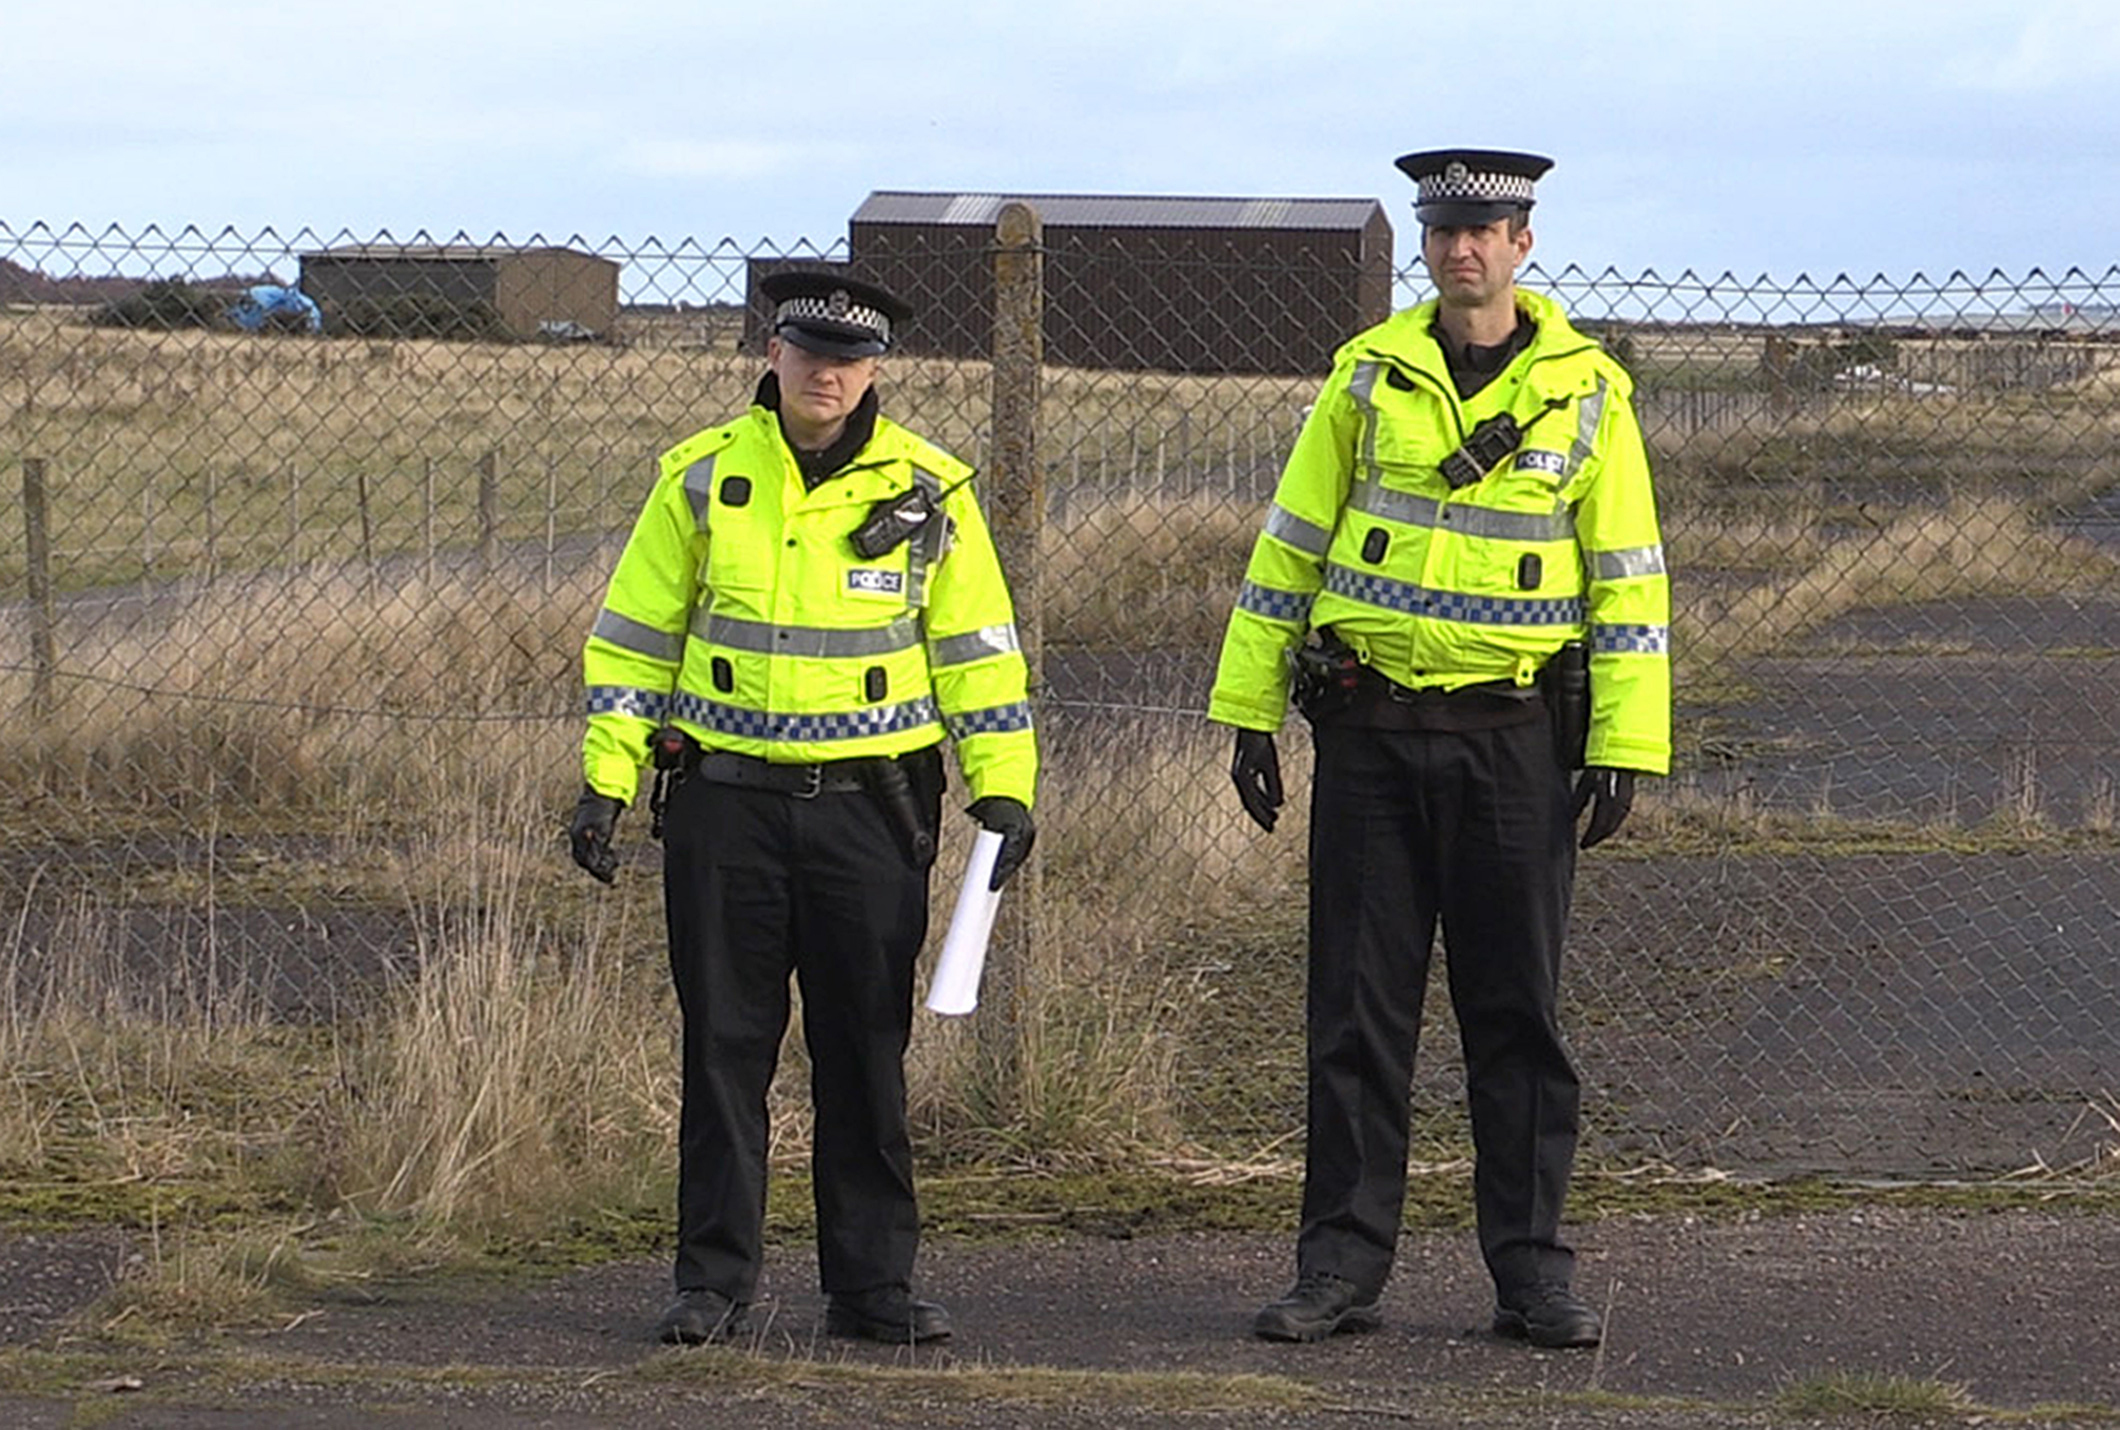 Police at RAF Tain, (Ben Philip/PA Wire)